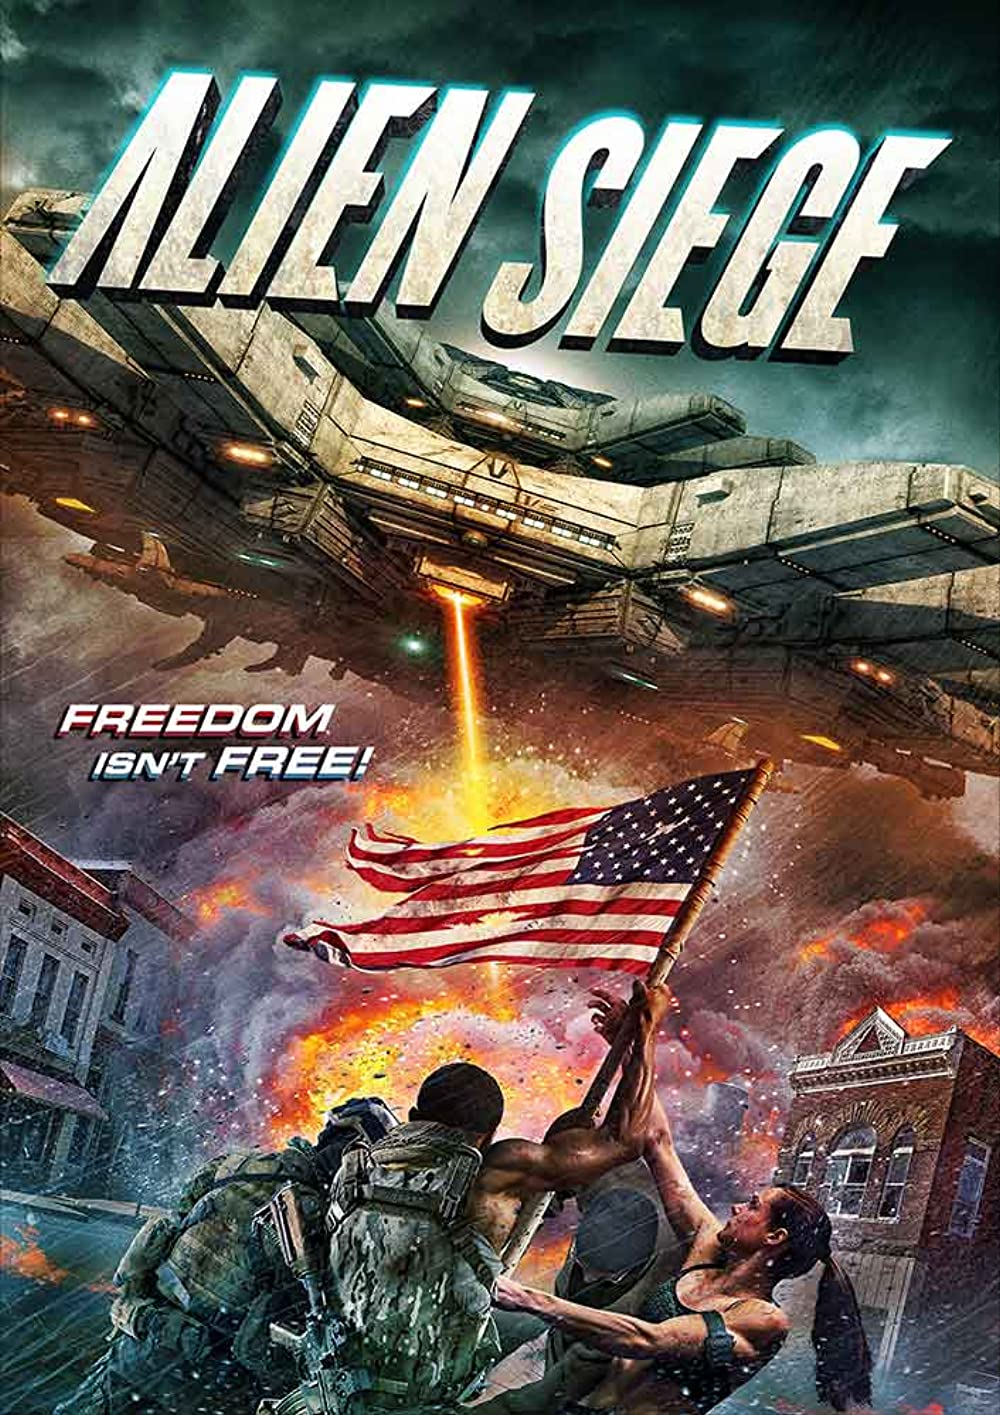 Alien Siege 2018 Hindi Dual Audio 1080p BluRay 1.5GB Download